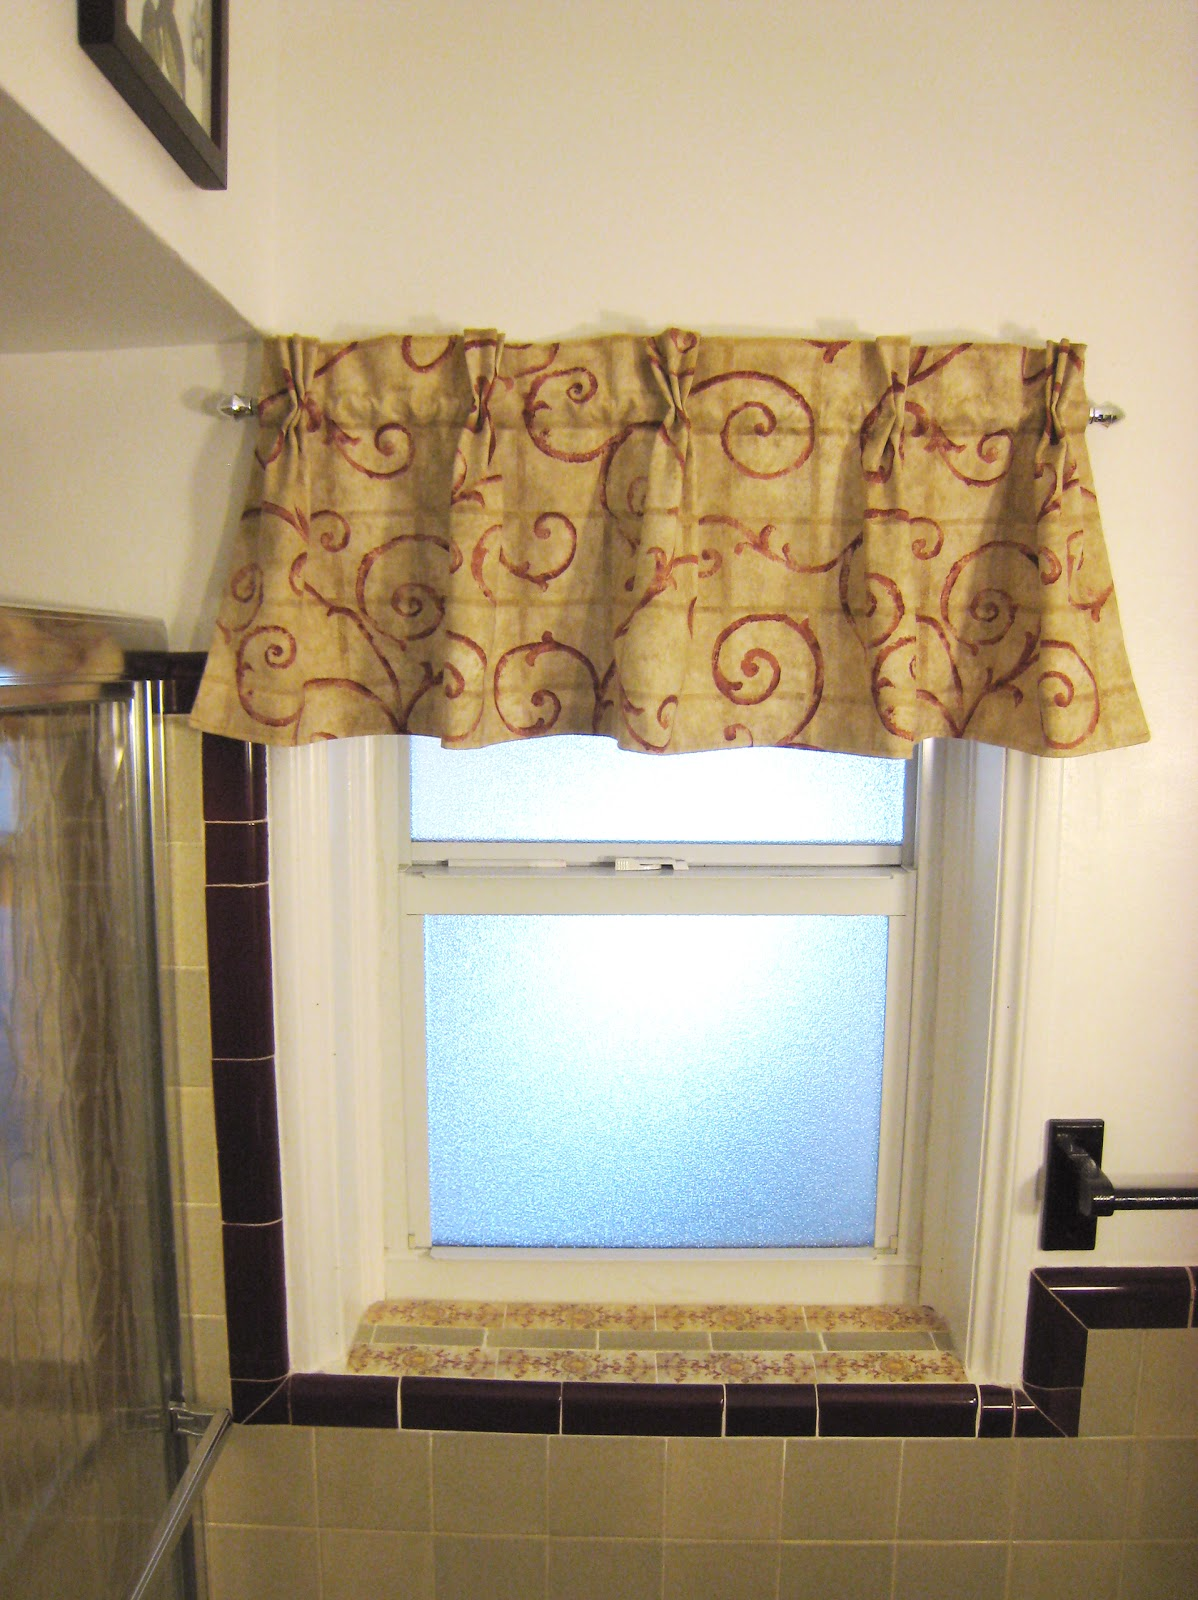 The reformatory bathroom window valance for Window valance